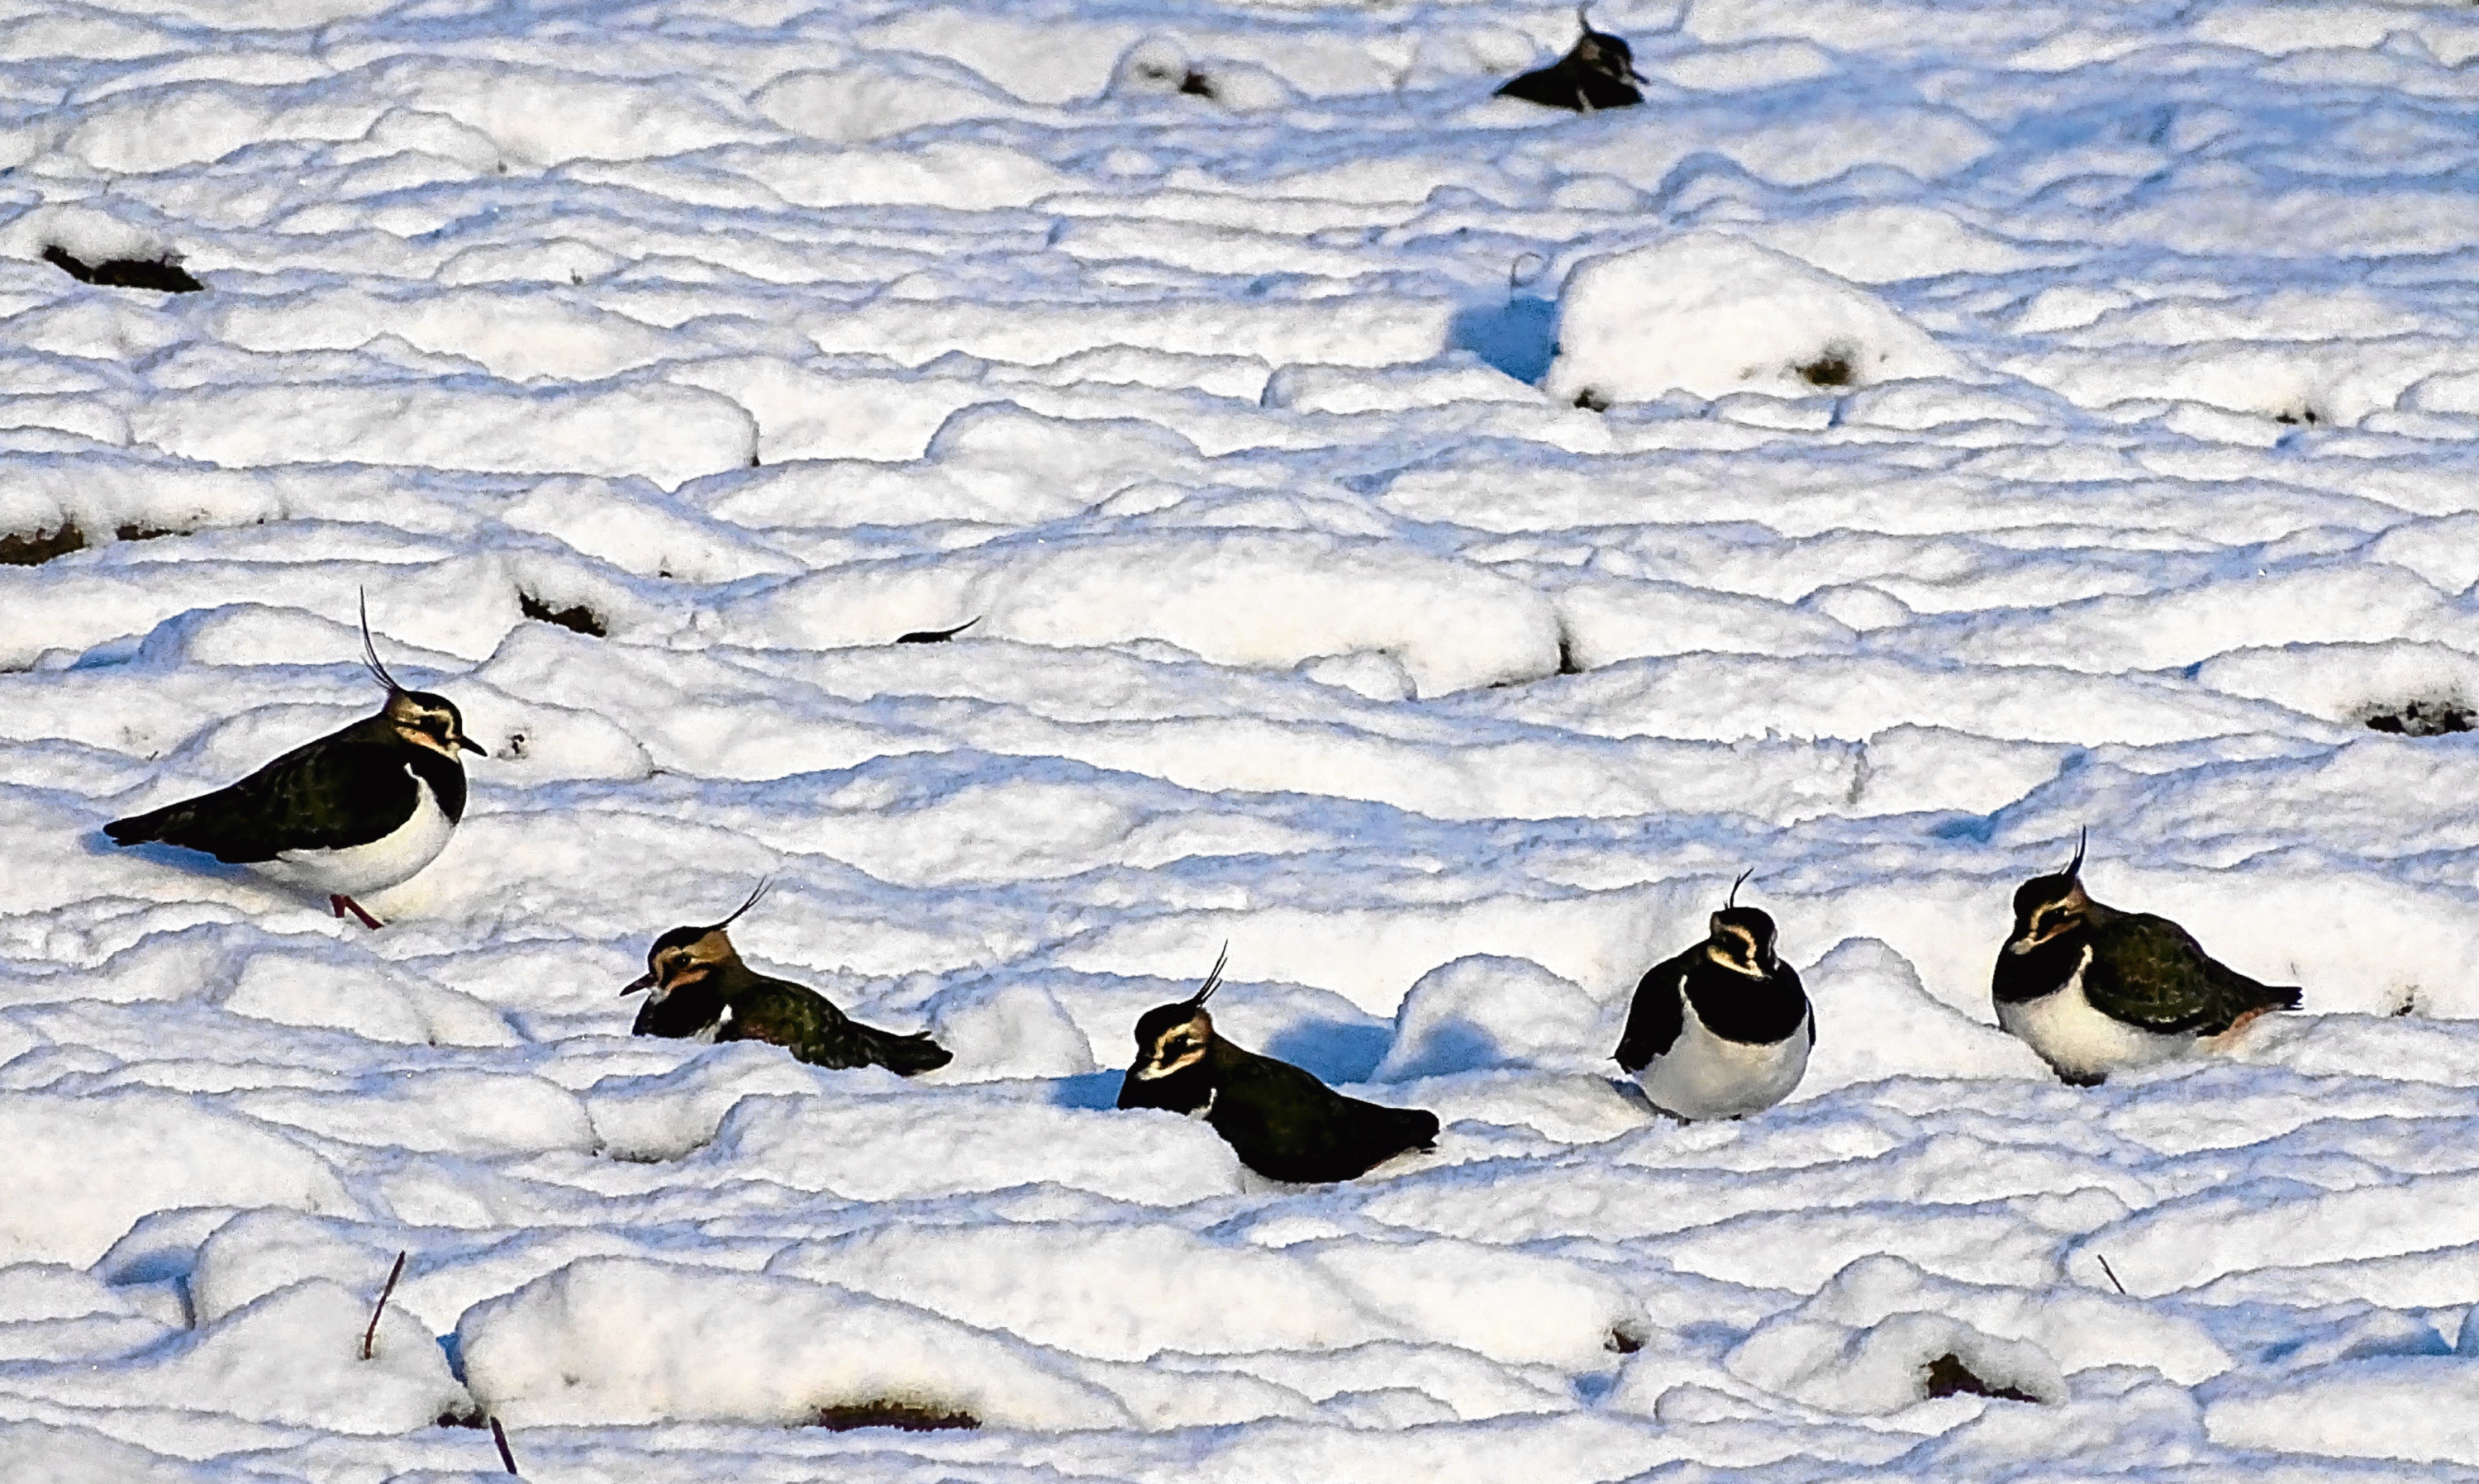 Lapwings mysteriously hunkered down in the snow on Flanders Moss.